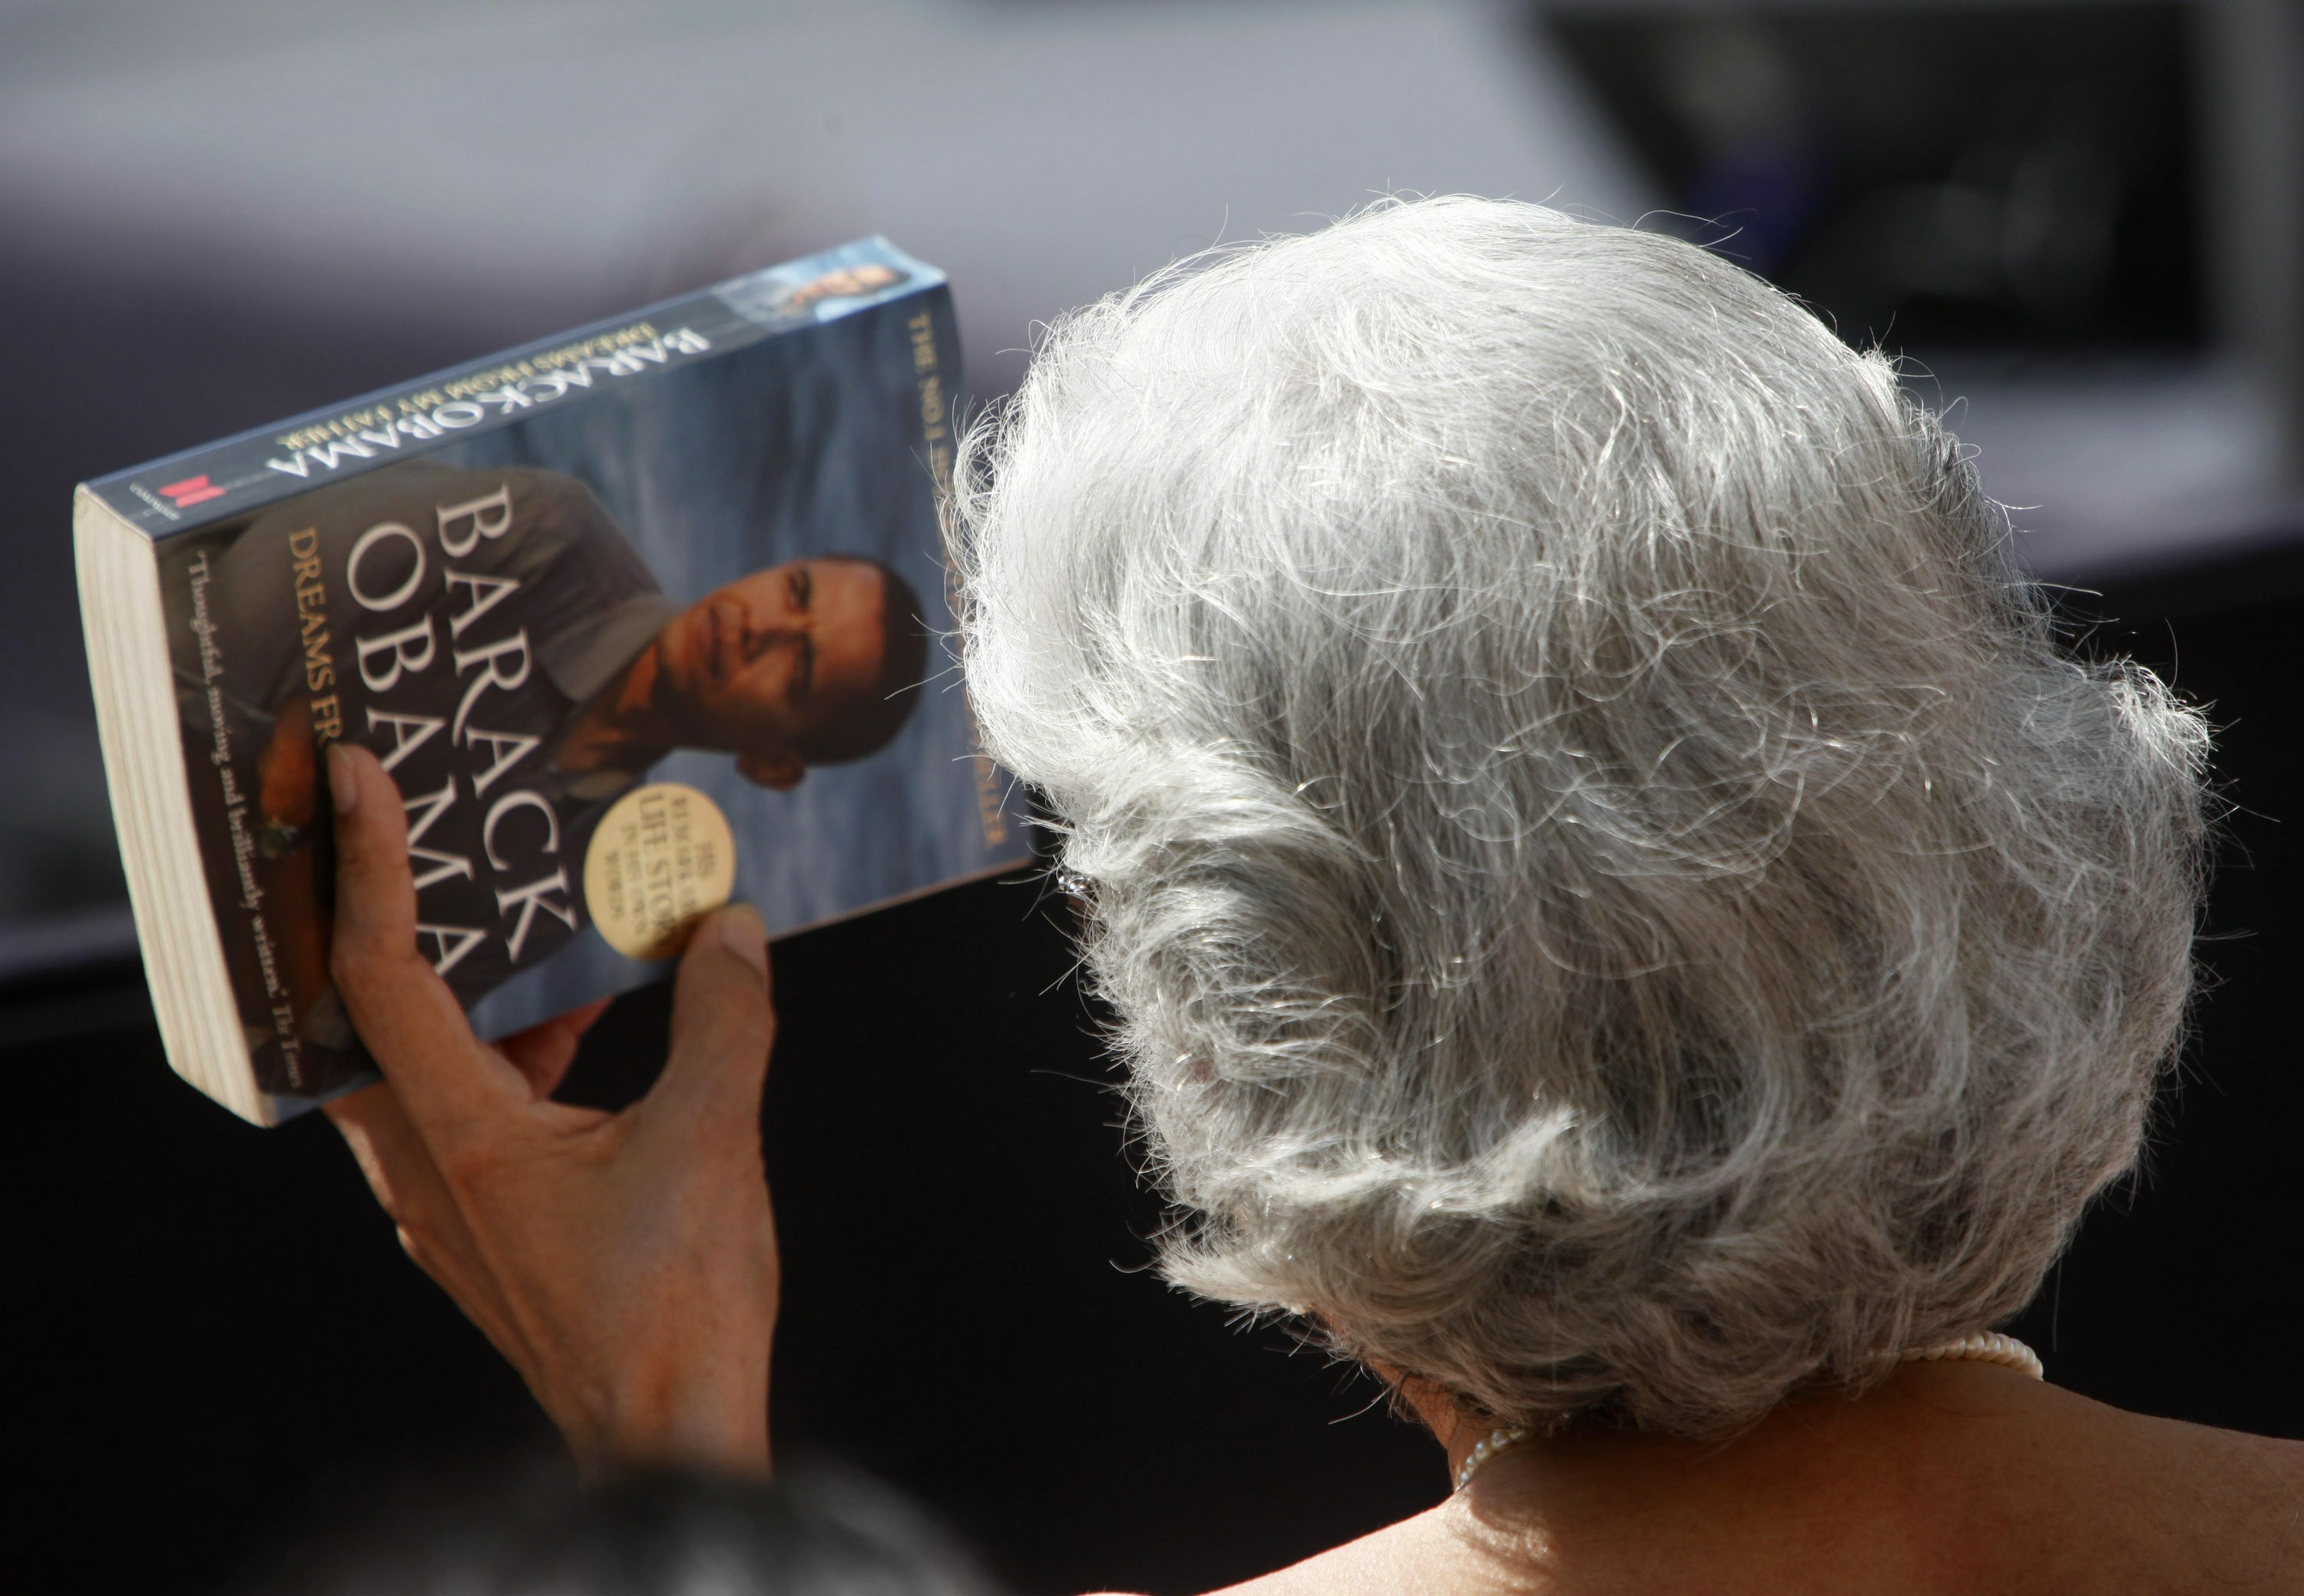 Thousands spent by embassies to buy Obama books